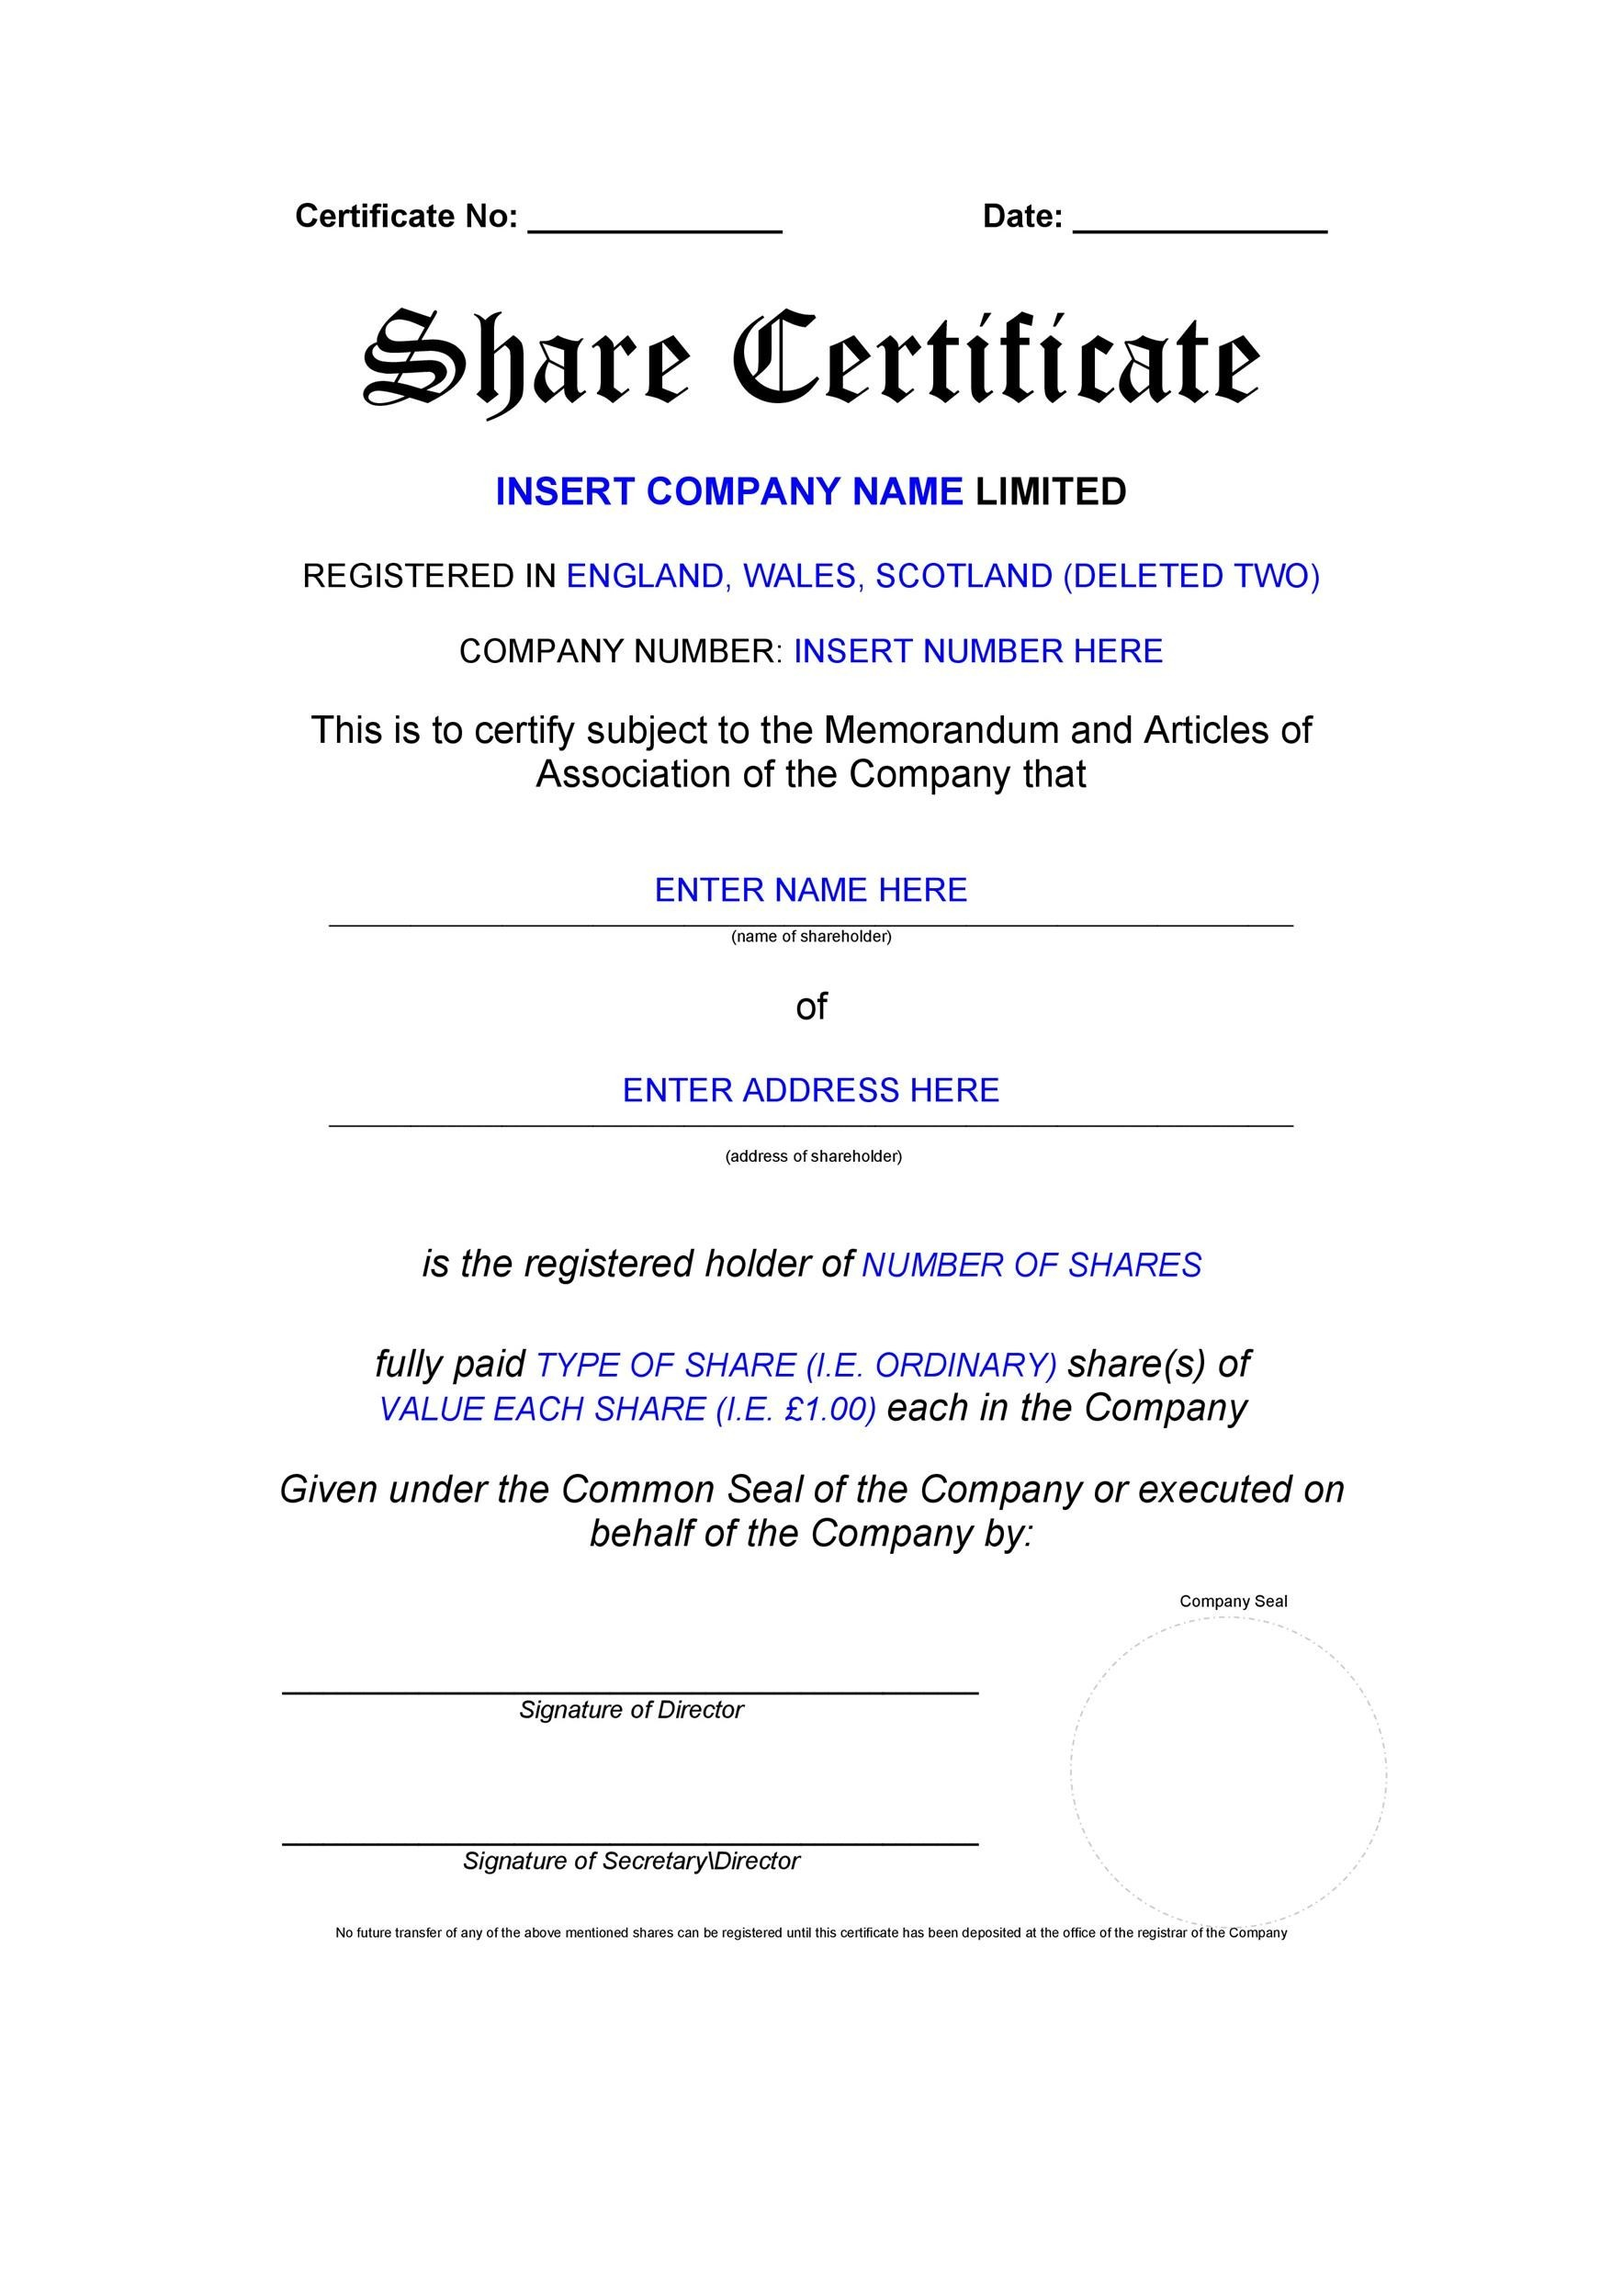 40 Free Certificate Templates Word PDF Template Lab – Shareholder Certificate Template